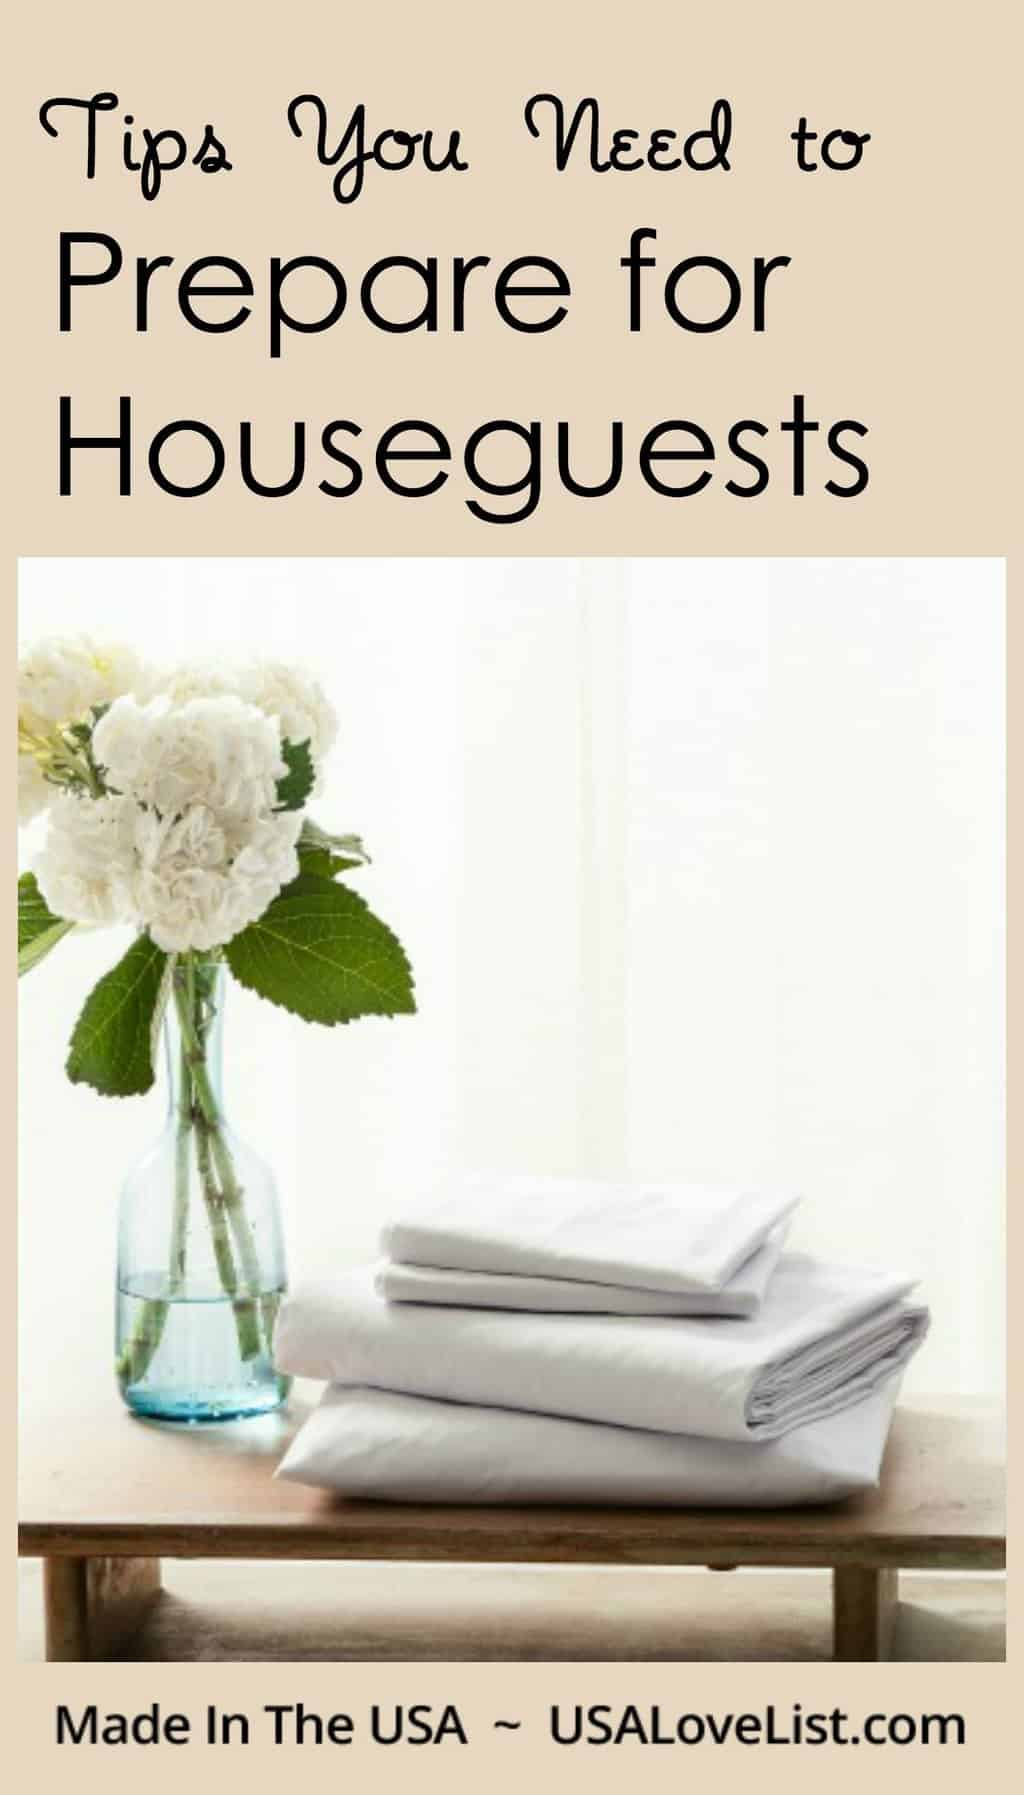 Prepare for houseguests with these tips